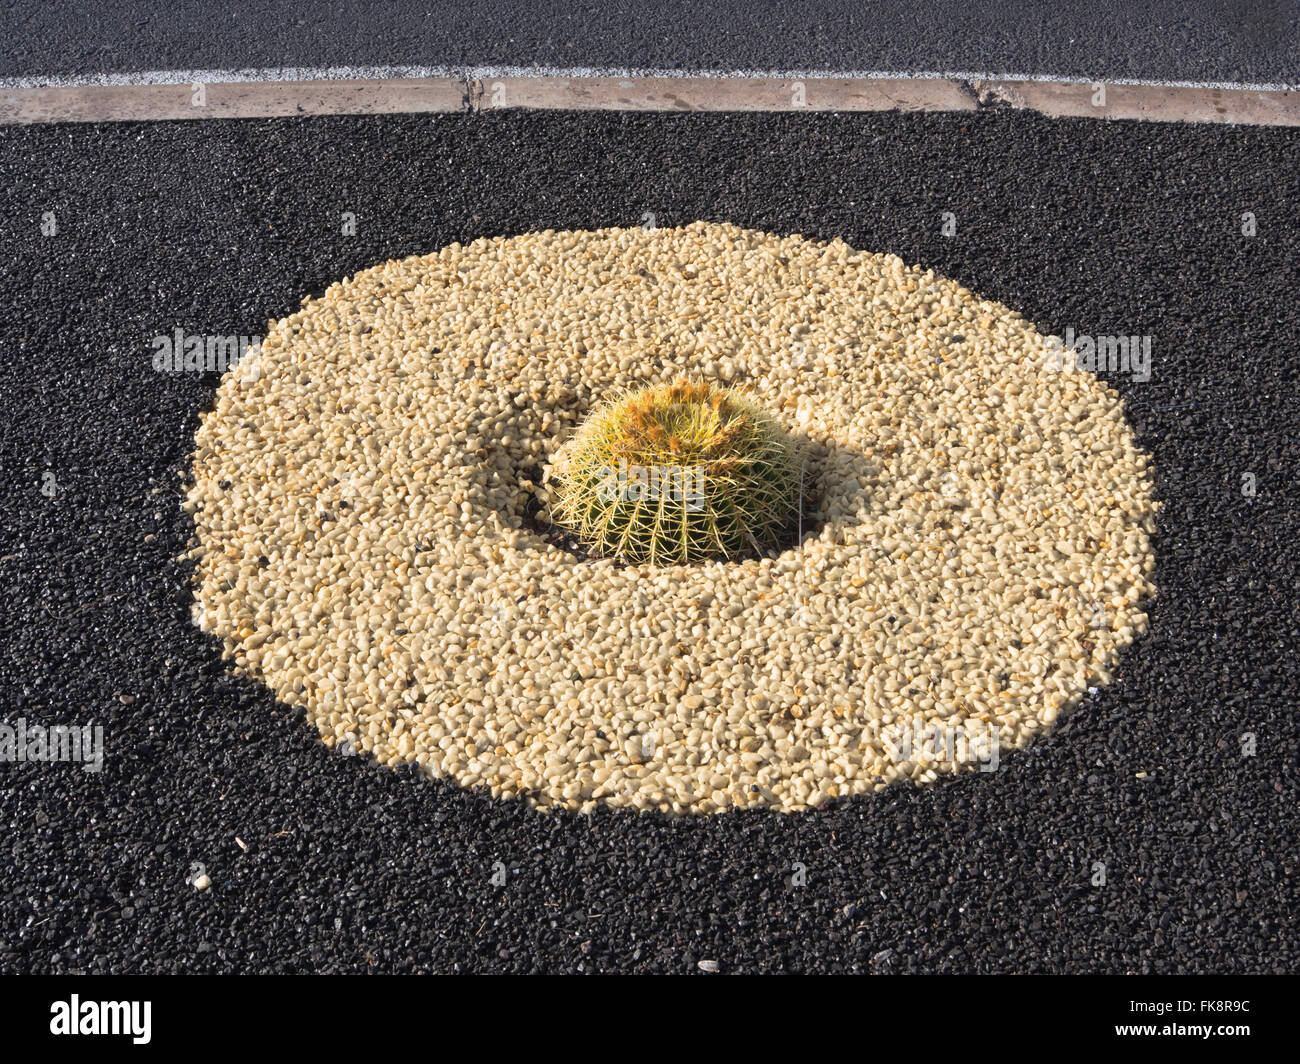 Cactus planted in  lava gravel can be seen along many pavements, promenades and parks in tourist developments in - Stock Image